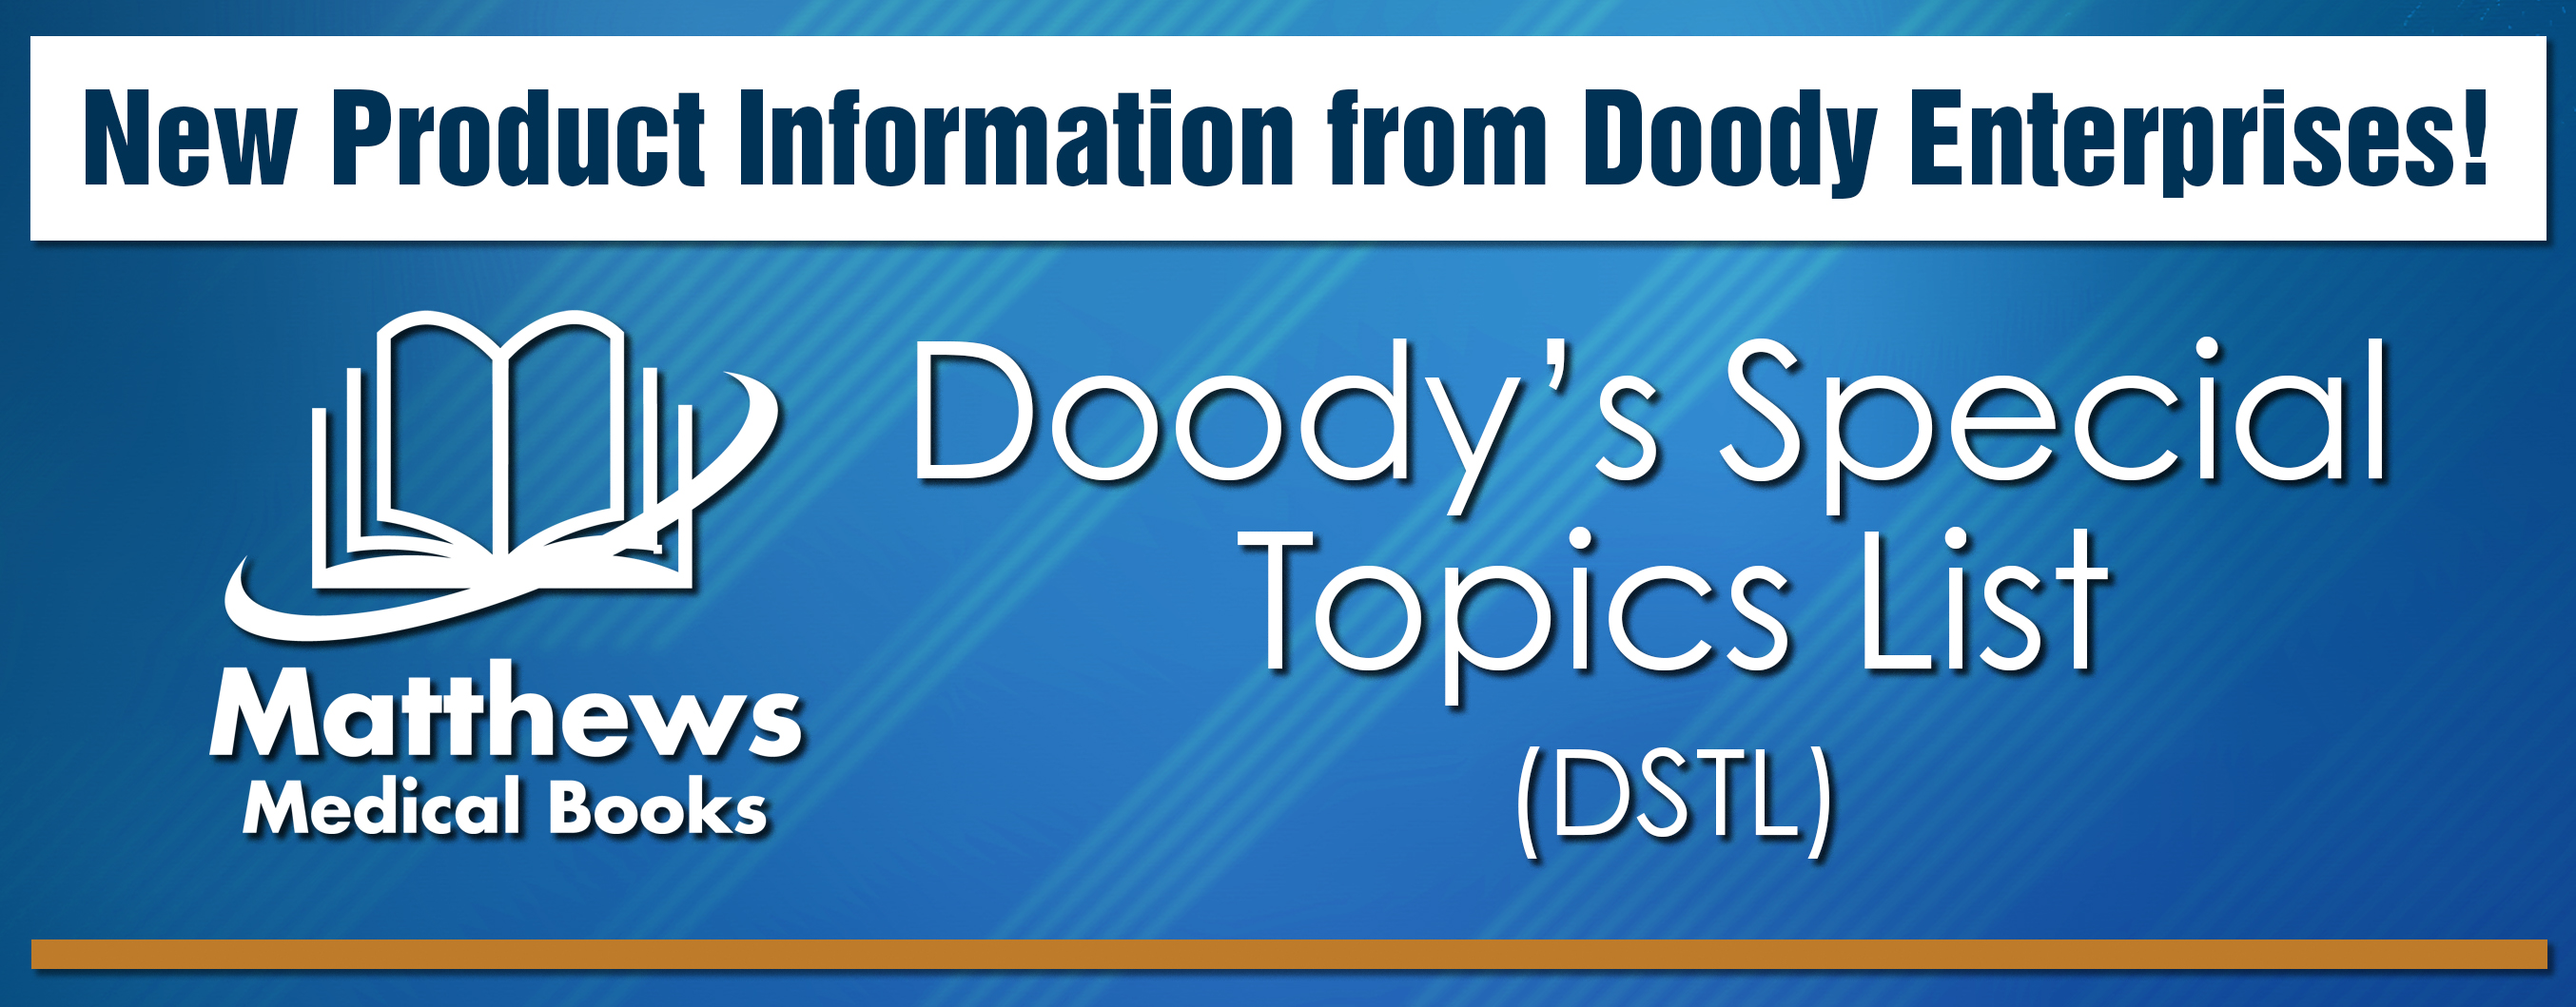 DSTL - Health Equity Title List Now Available